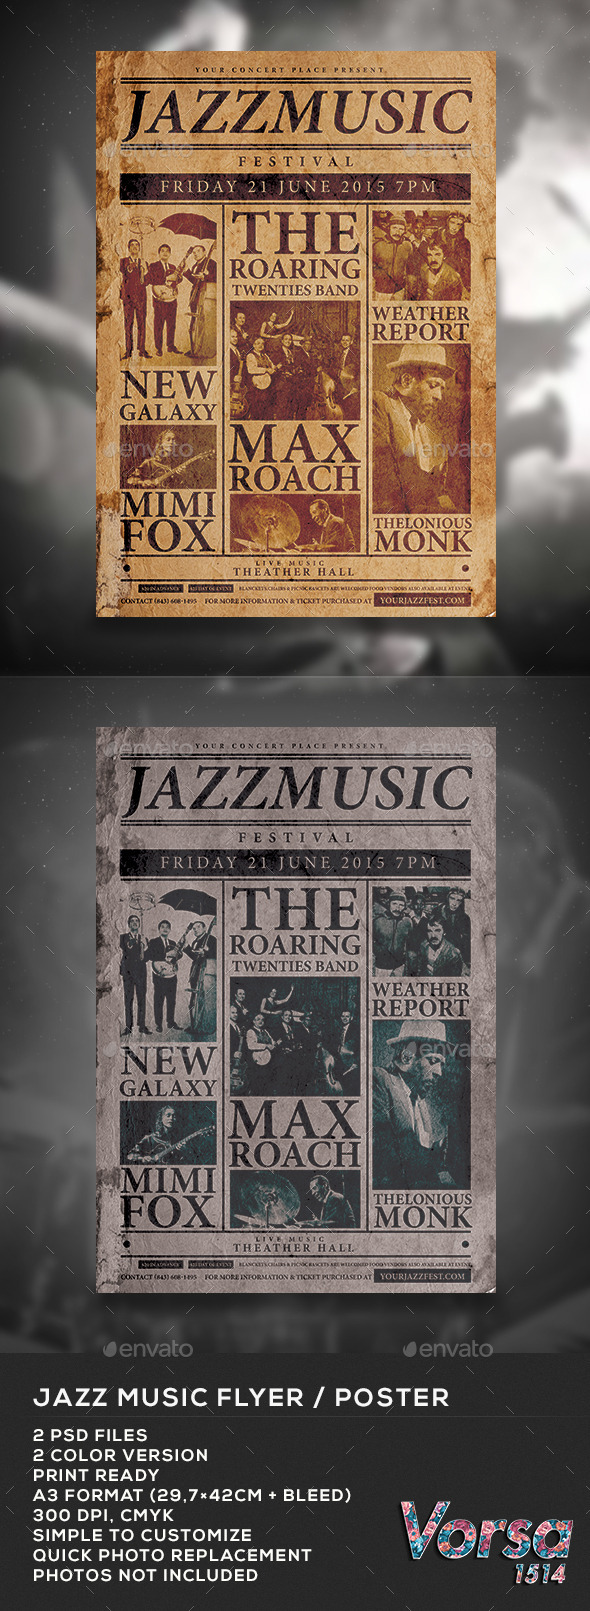 Jazz Music Flyer / Poster - Concerts Events